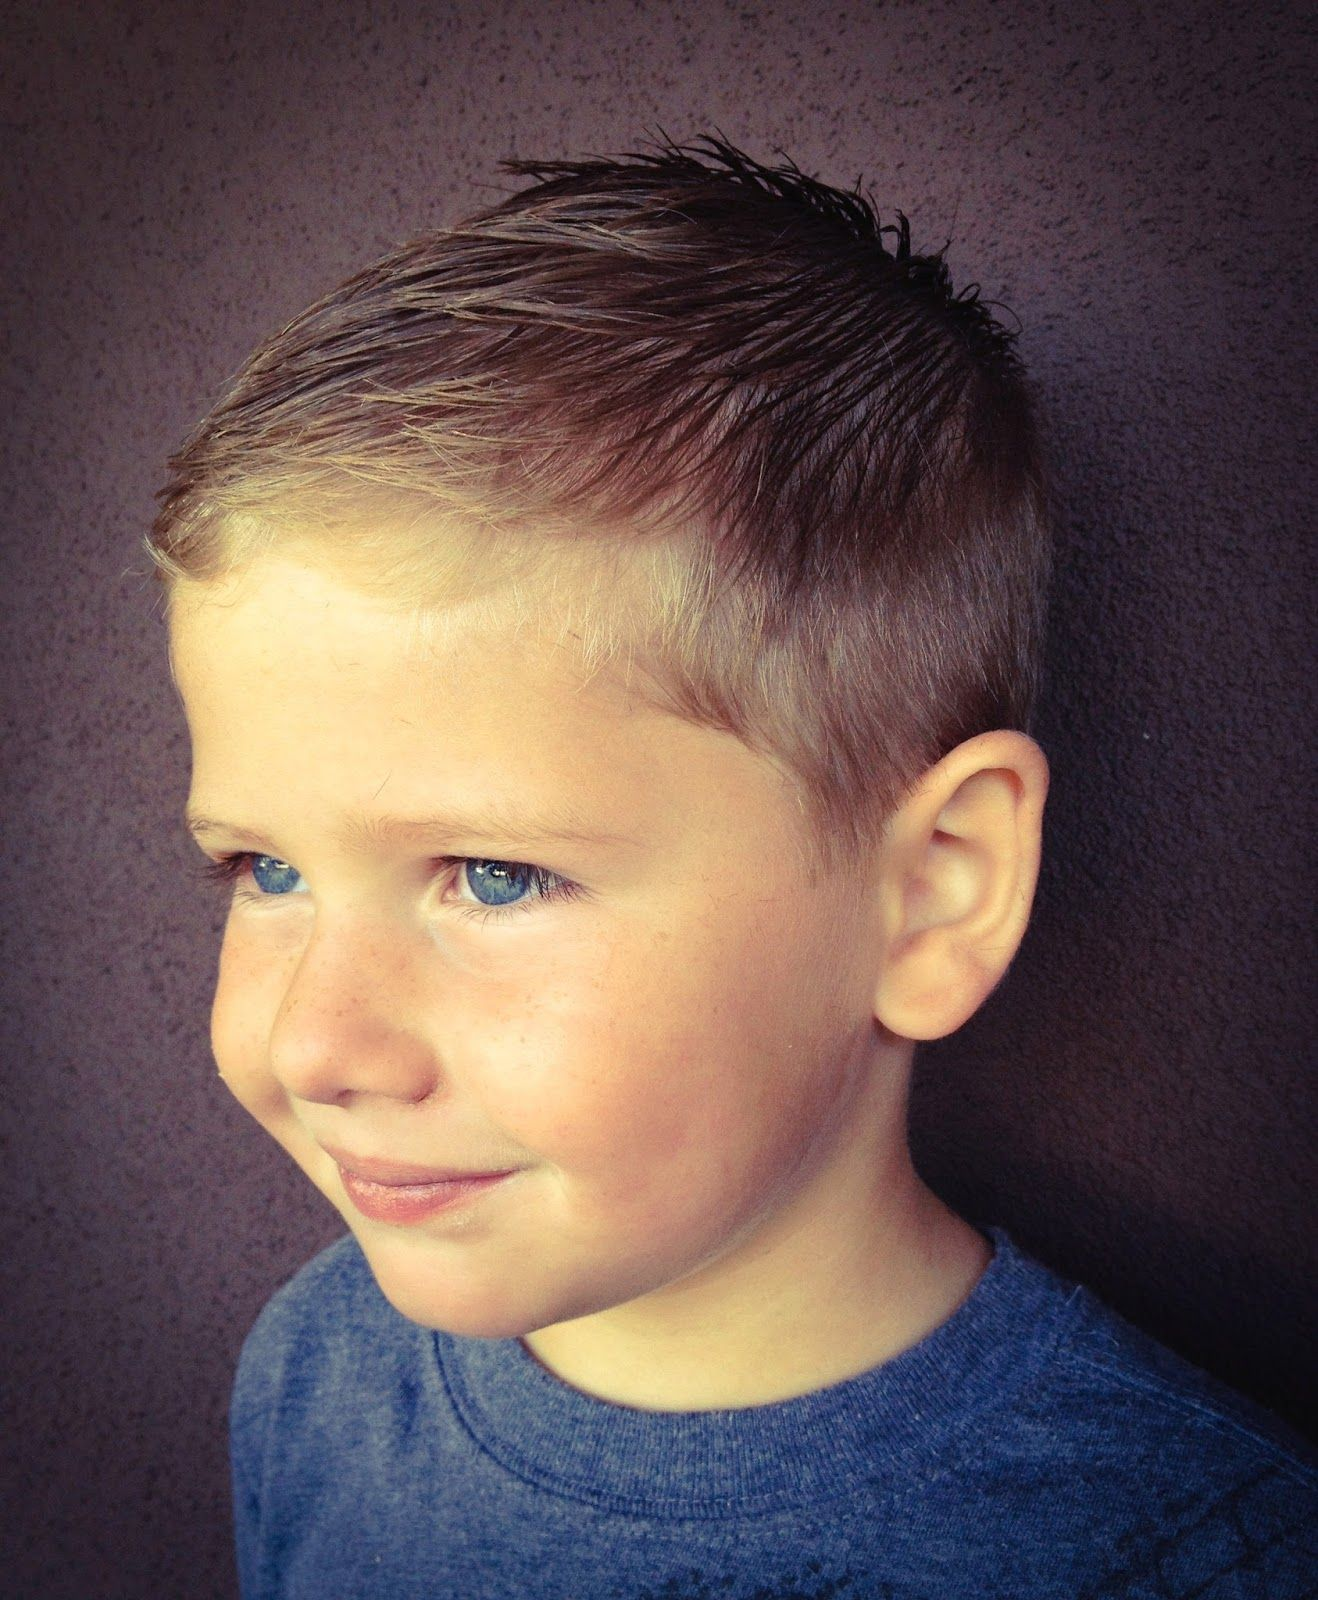 Hairstyles For A Boy Boy Haircuts Boy Hair Cuts Boy Hairstyles Boy Haircuts Short